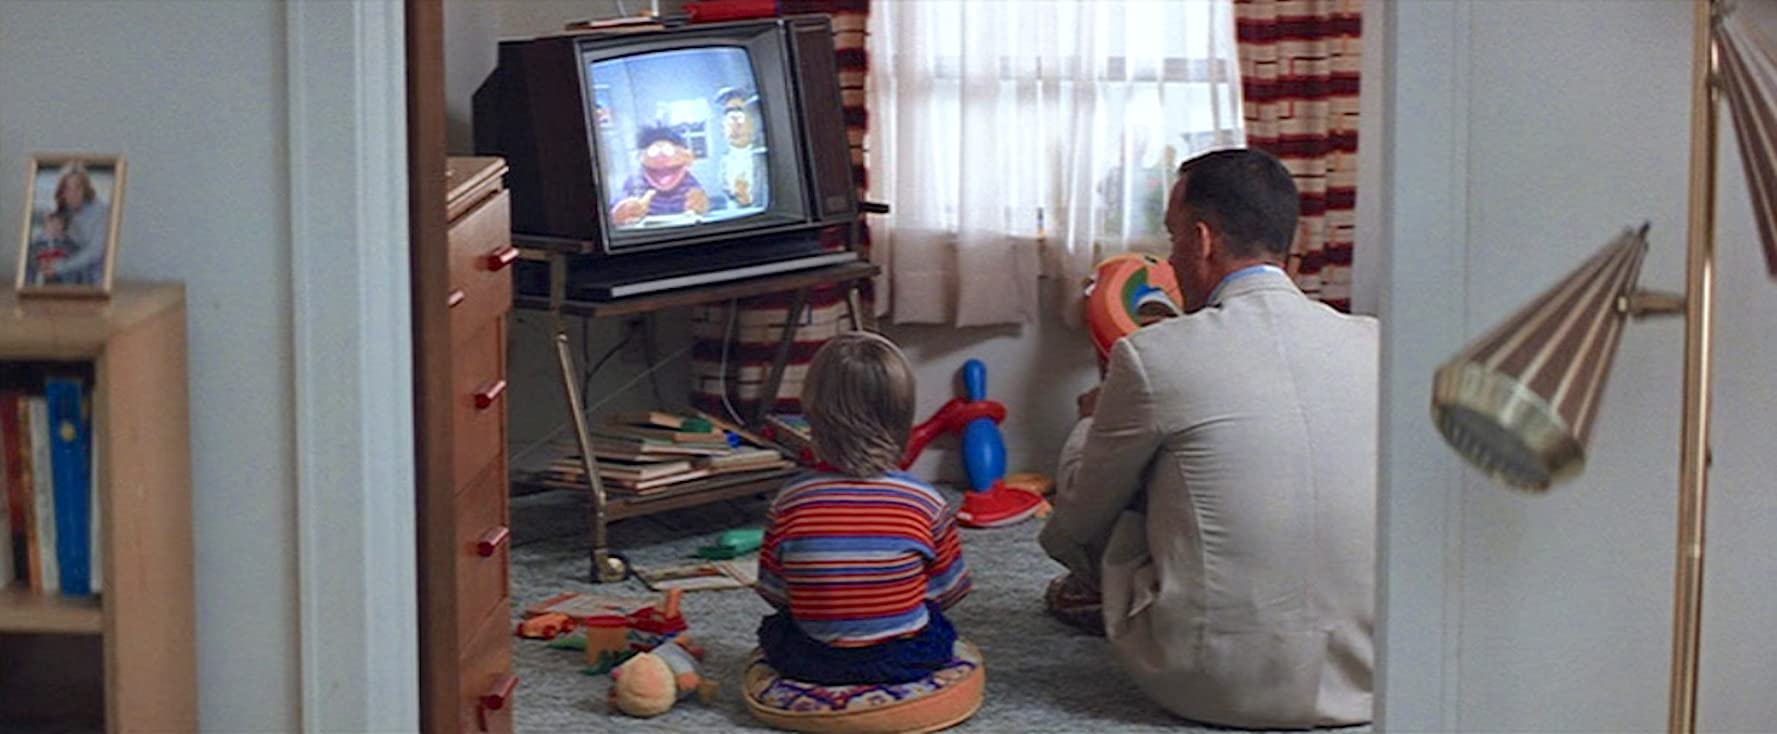 Tom Hanks and Haley Joel Osment in Forrest Gump (1994)